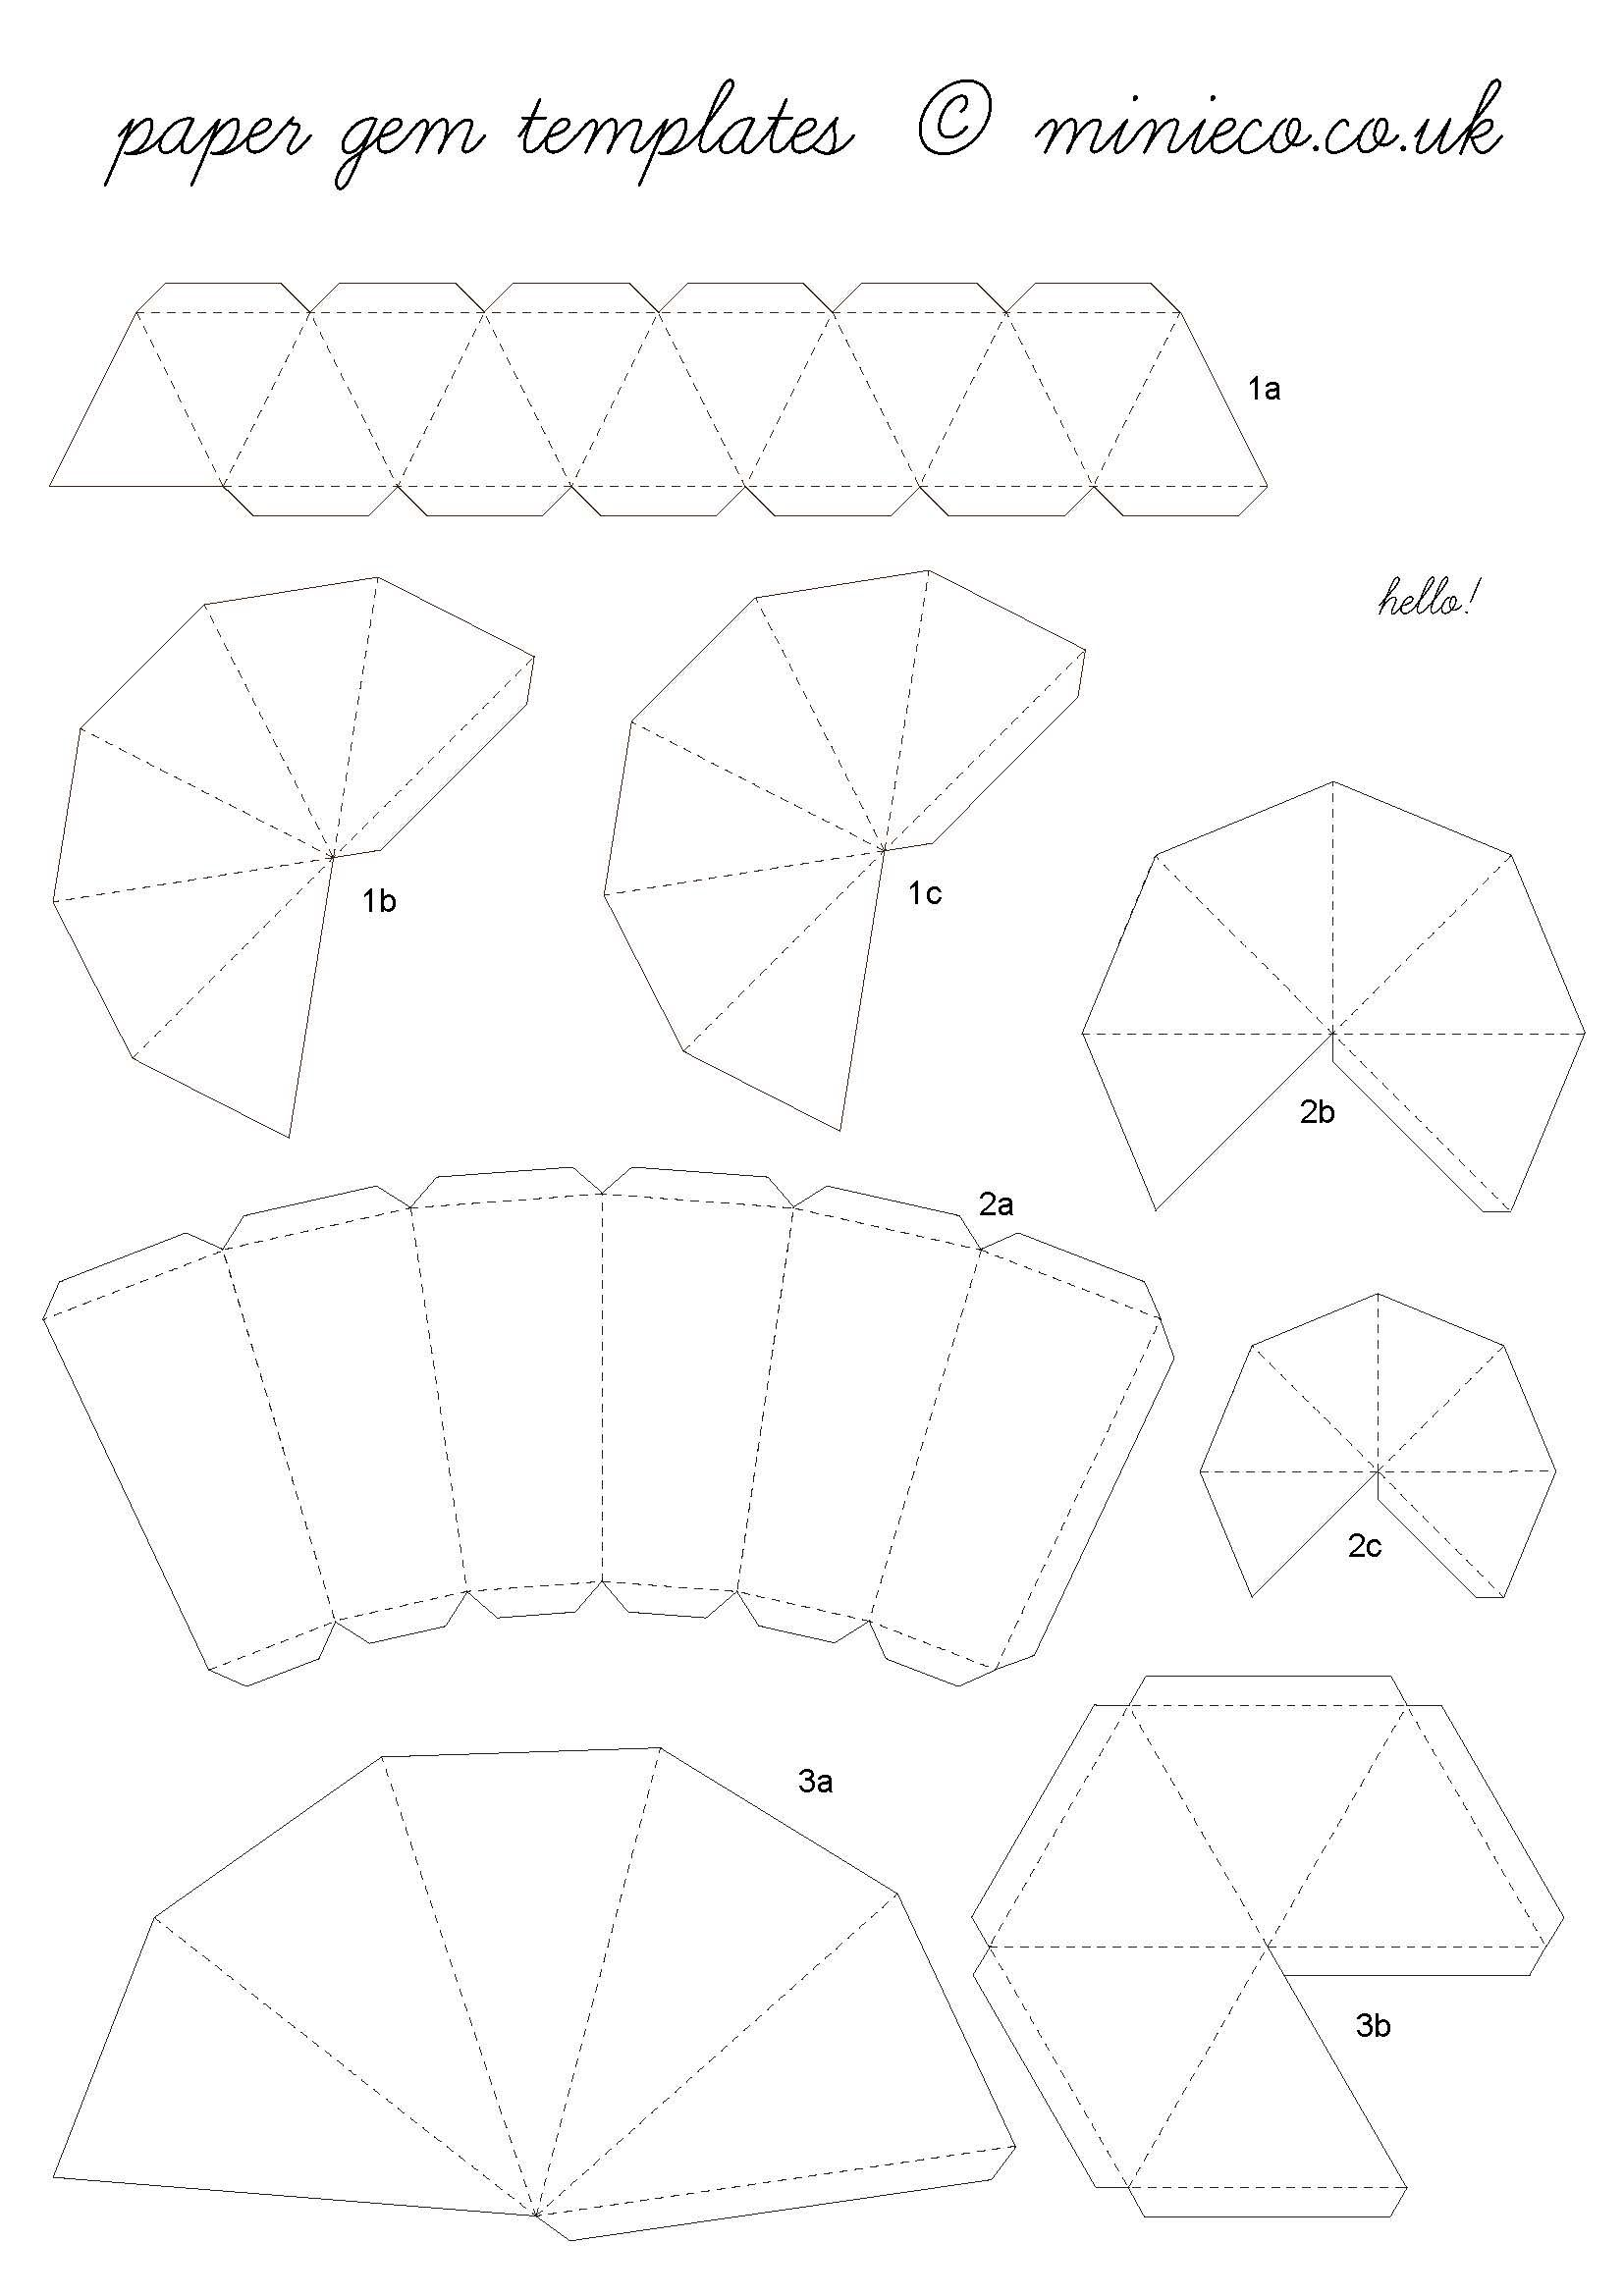 photo about 3d Paper Mask Template Free Printable identified as paper gem template 07. crafts Paper diamond, Origami